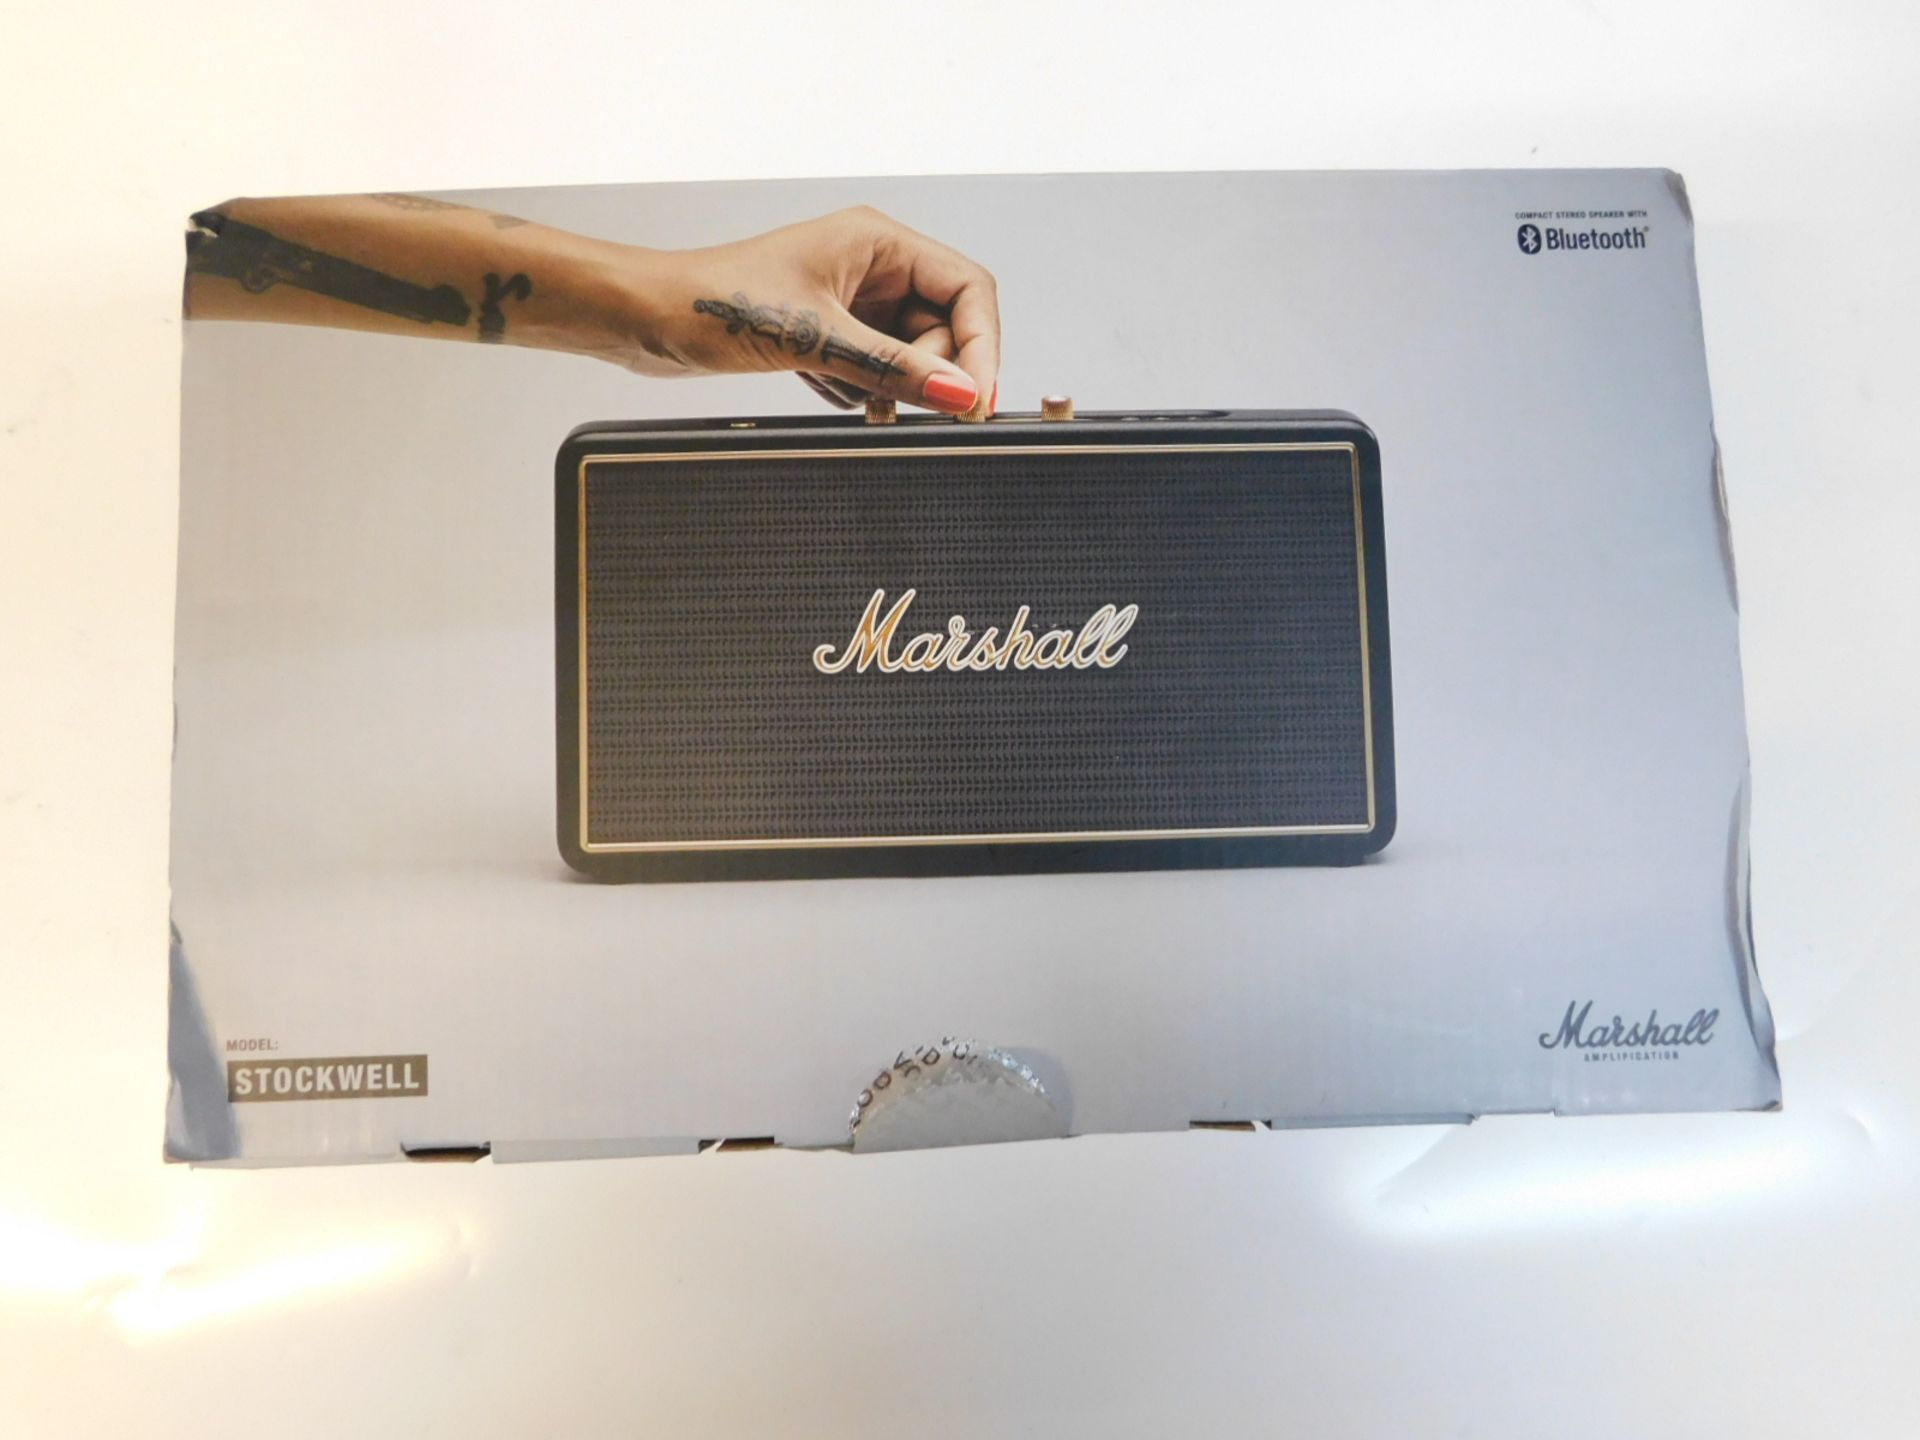 Lot 1087 - 1 BOXED MARSHALL STOCKWELL BLUETOOTH PORTABLE SPEAKER RRP £149.99